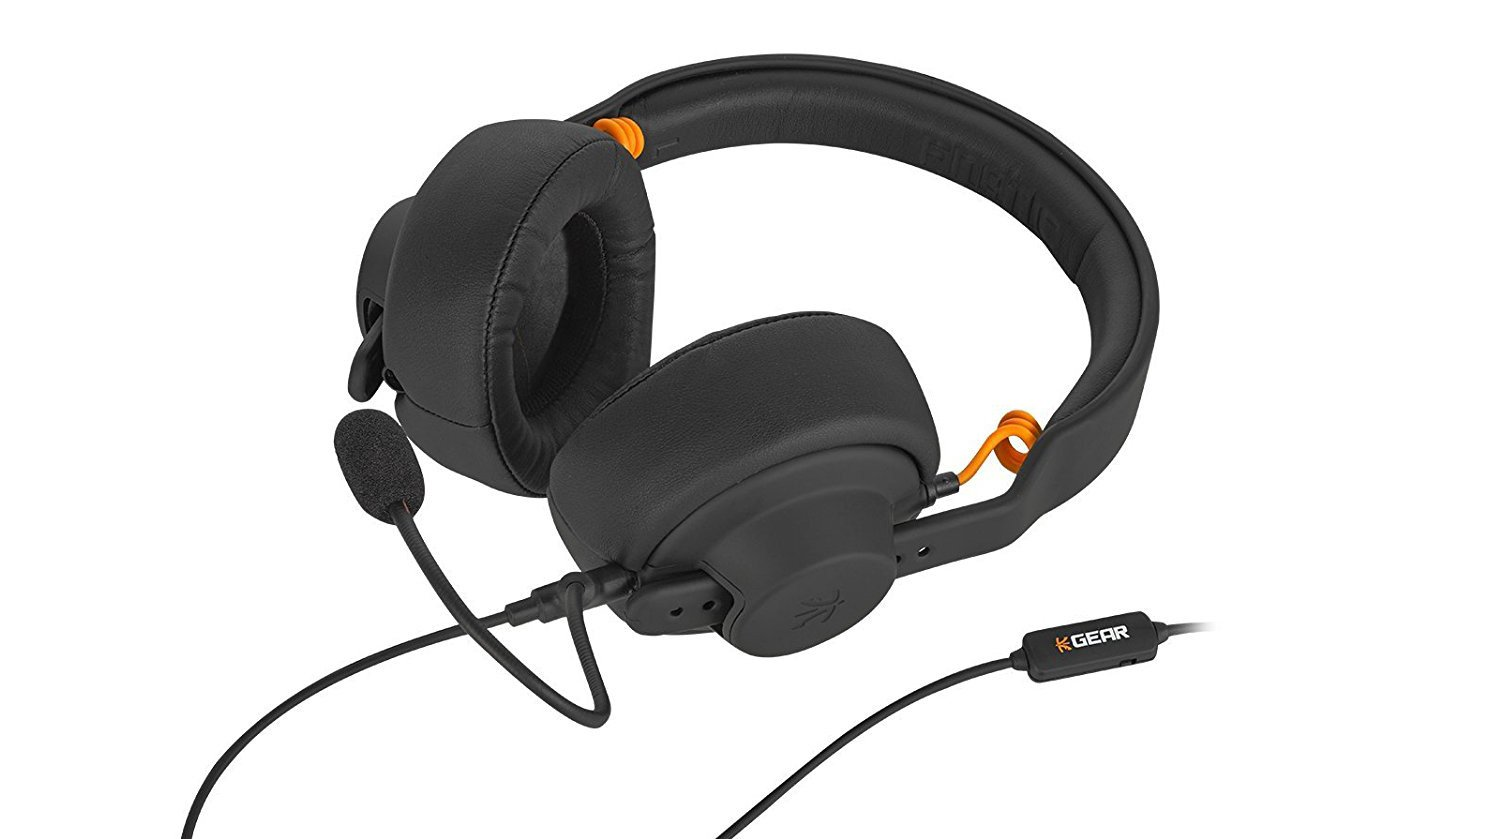 Best PC gaming headset 2019: The best gaming headsets from £30